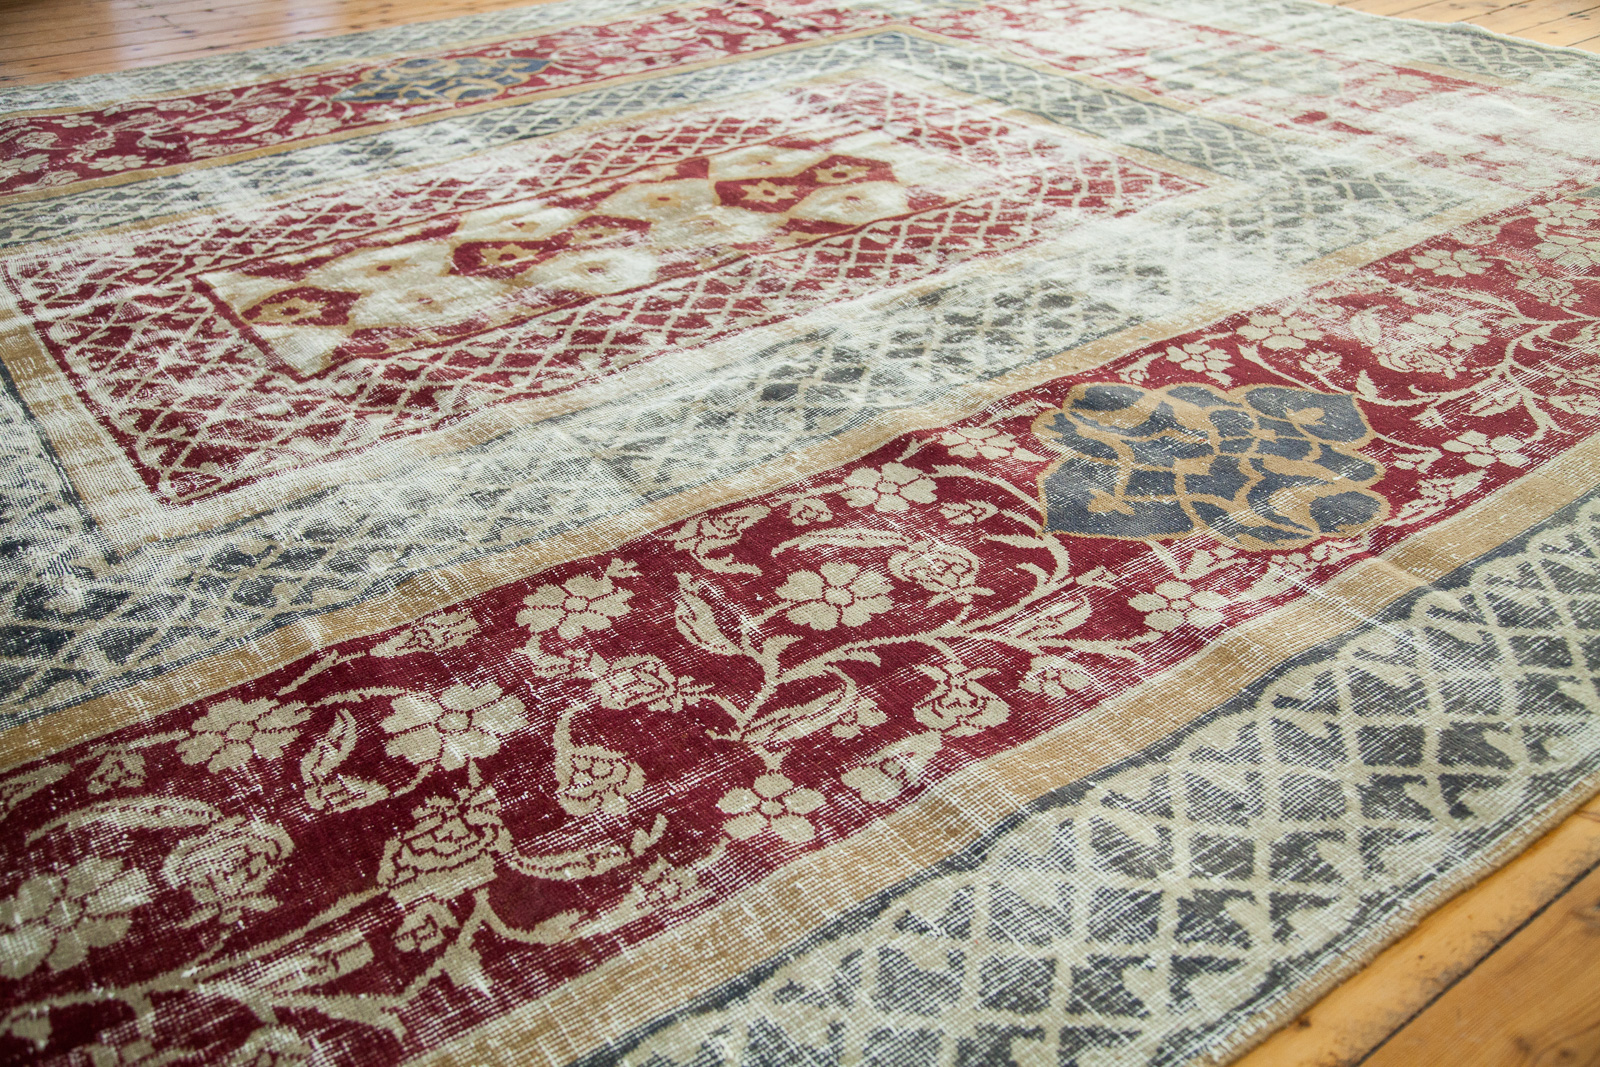 Worn Vintage Turkish Rug